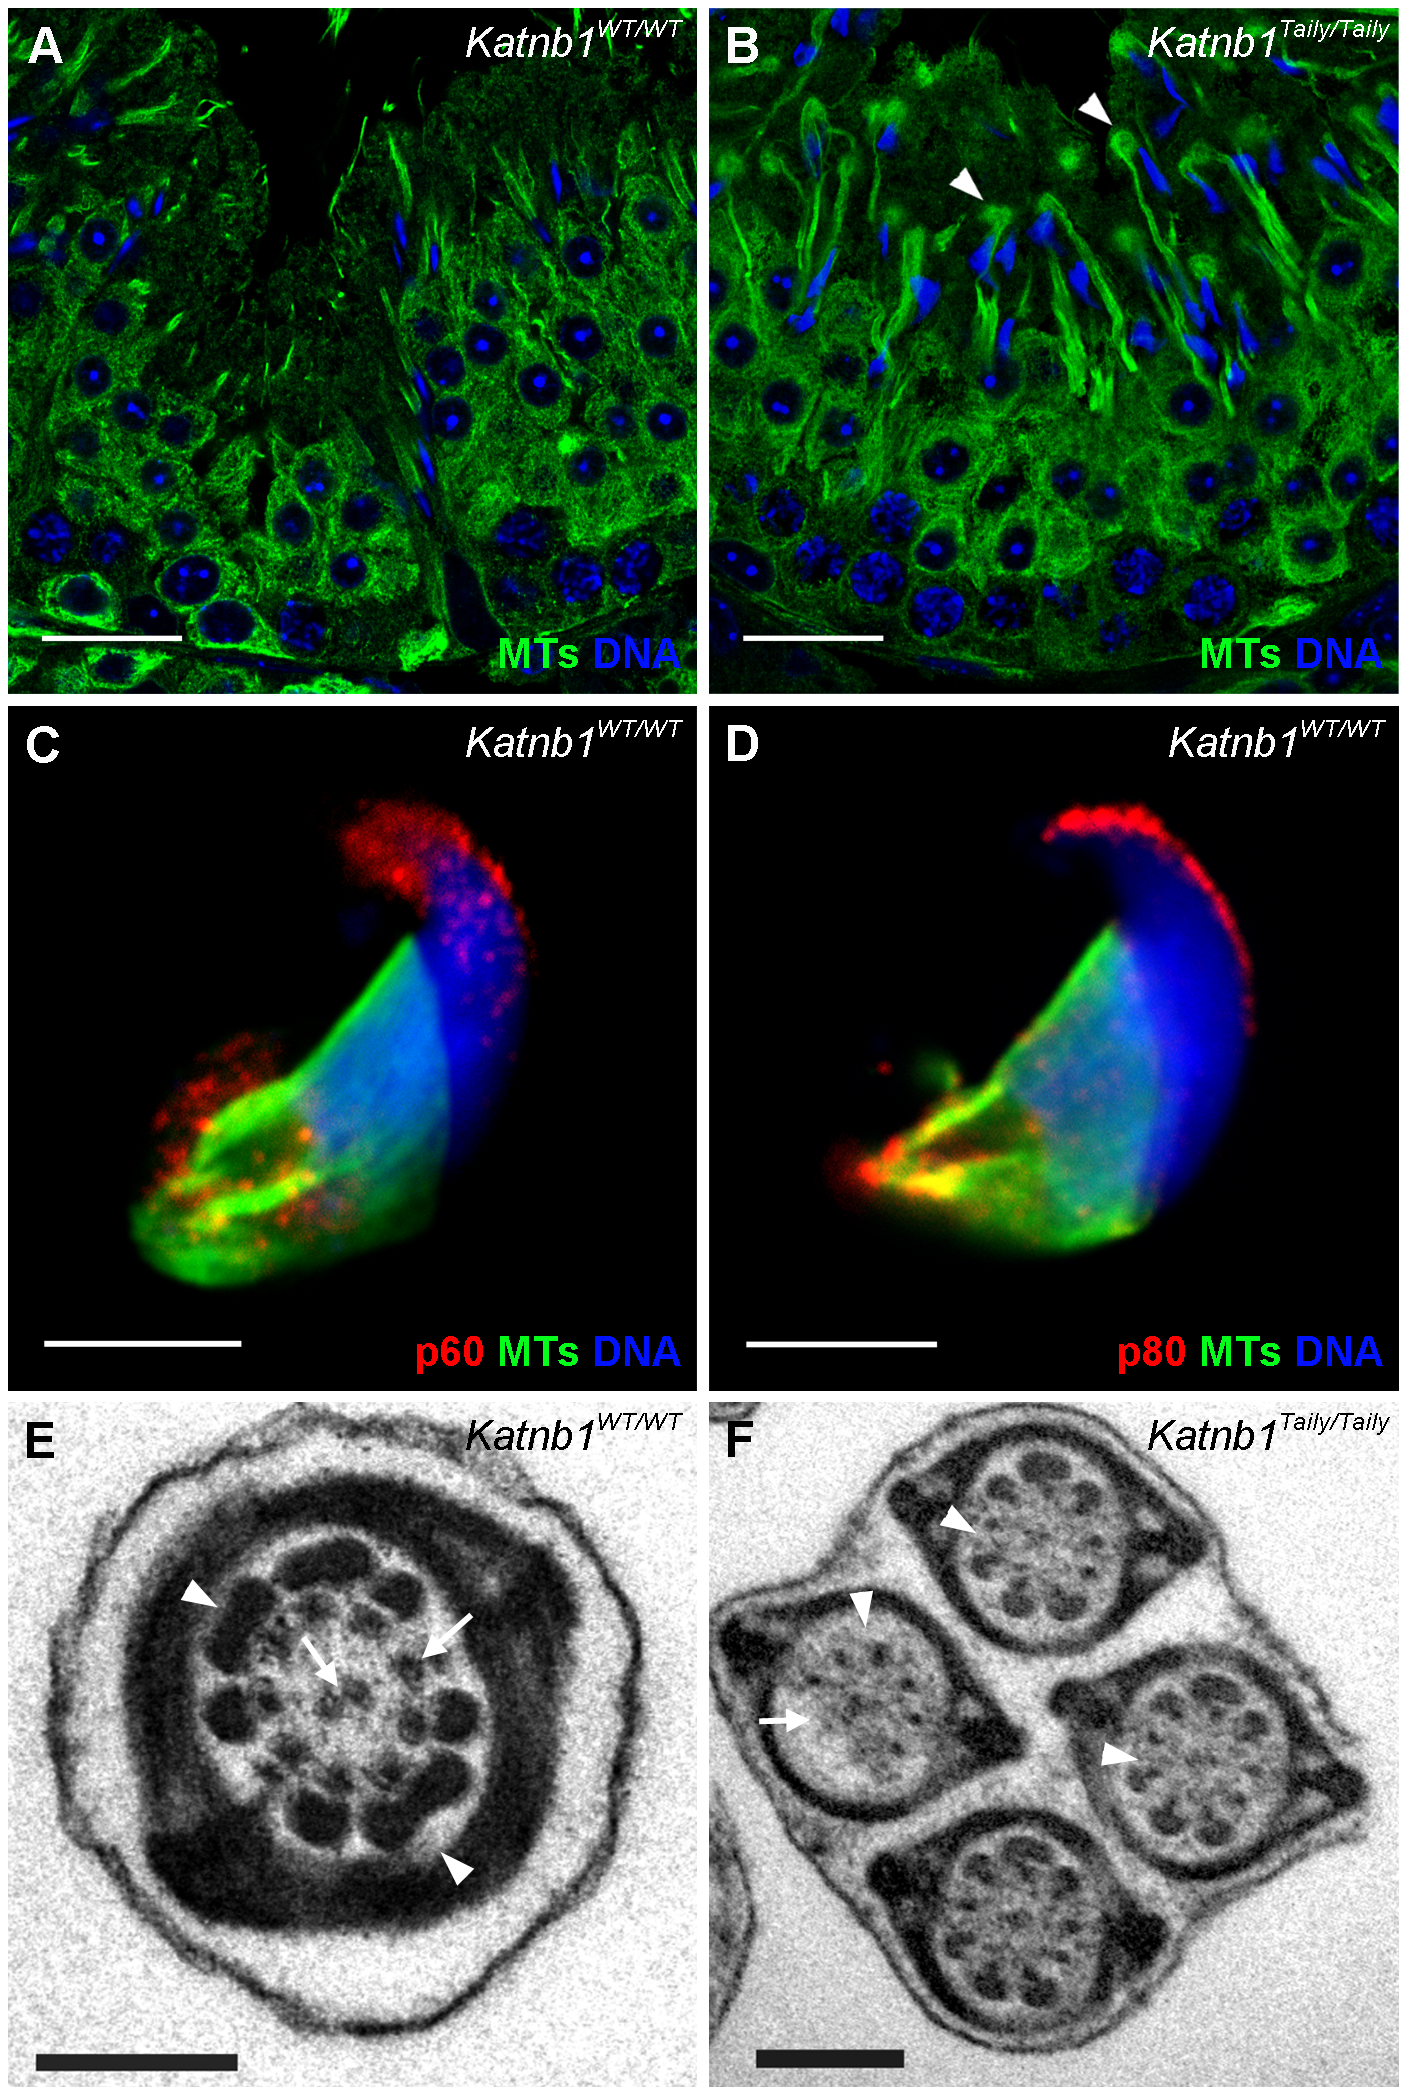 Katanin localization to manchettes and abnormalities in manchette resolution and flagella structure in <i>Katnb1<sup>Taily/Taily</sup></i> spermatids.